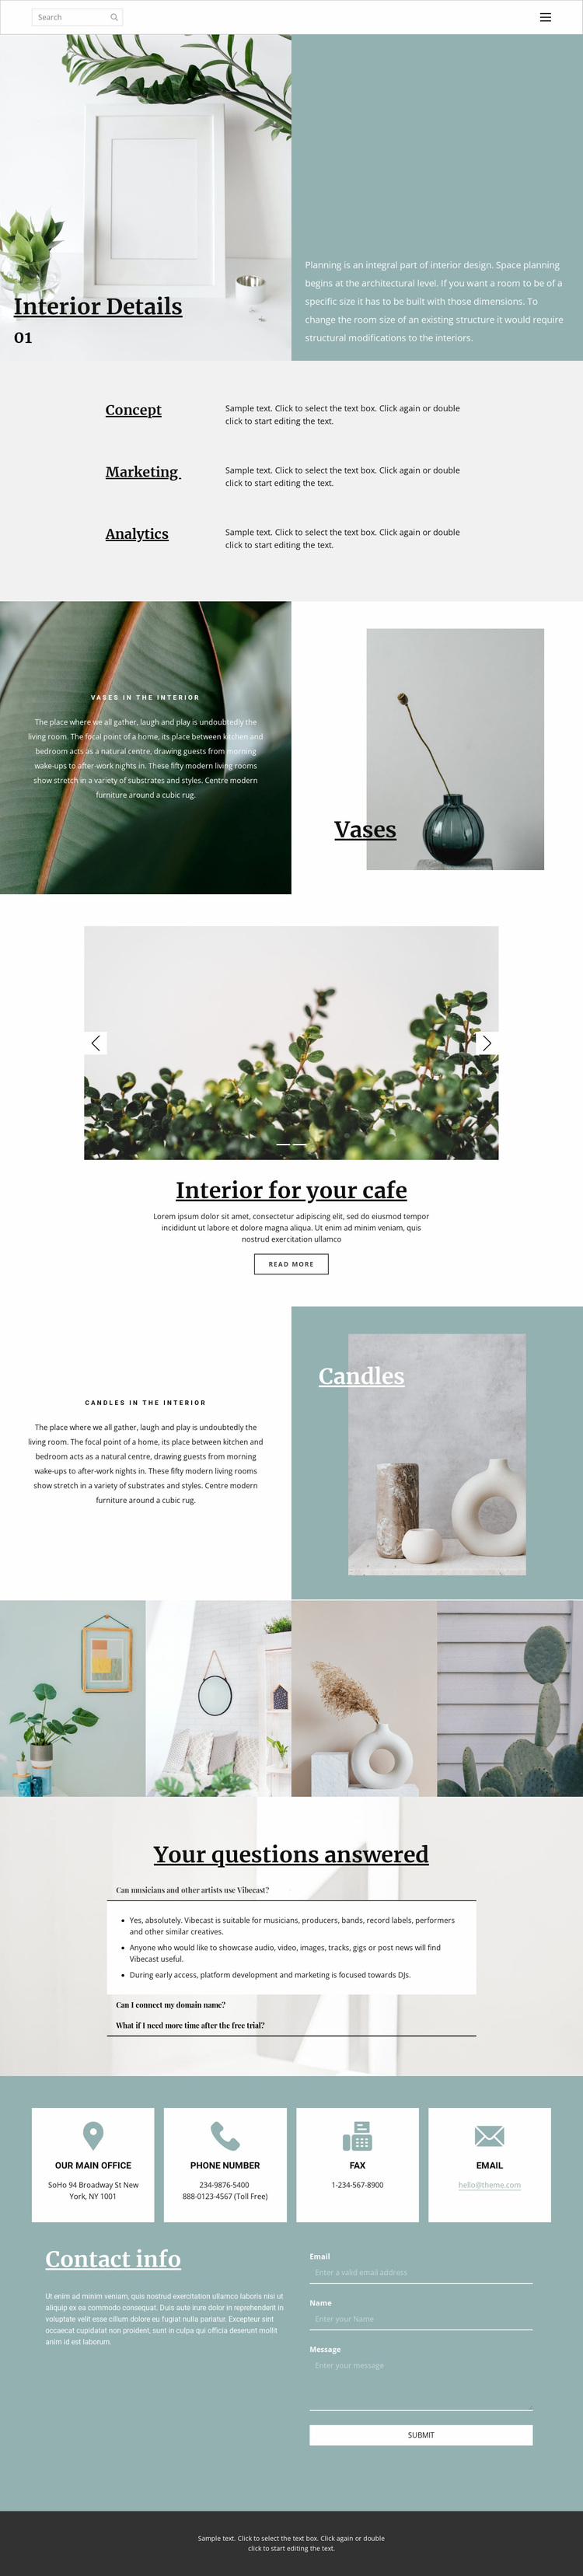 Help in organizing the space at home Website Design